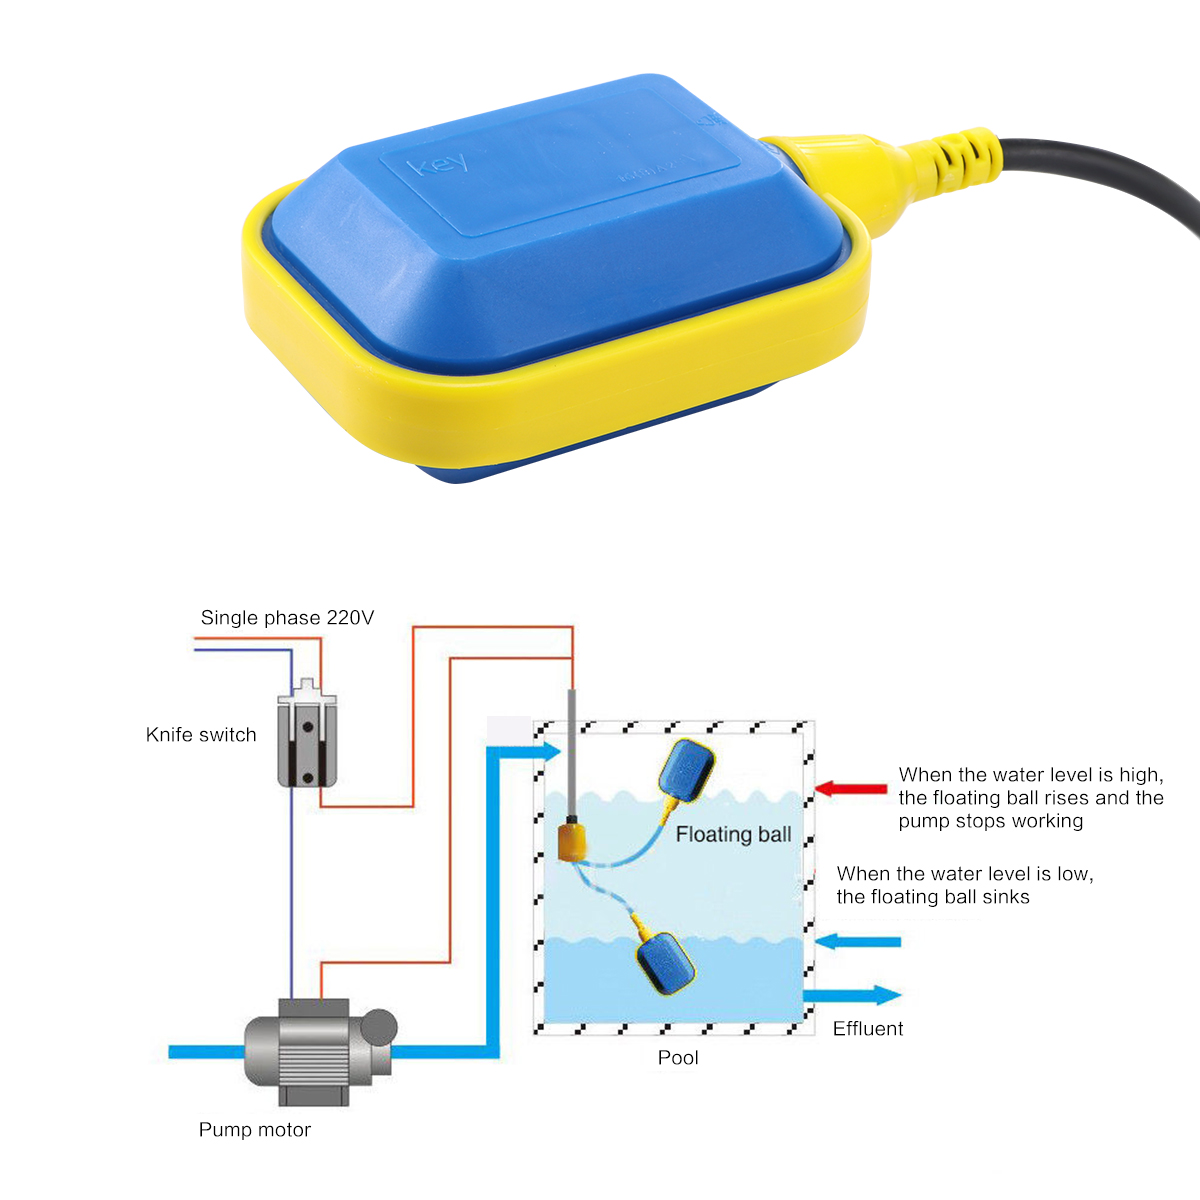 Float Switch 220v Water Level Automatic Pump Control Sensor Plastic 2 Diagram Floating With 5m Cable Liquid Place Submersible Filling Empting